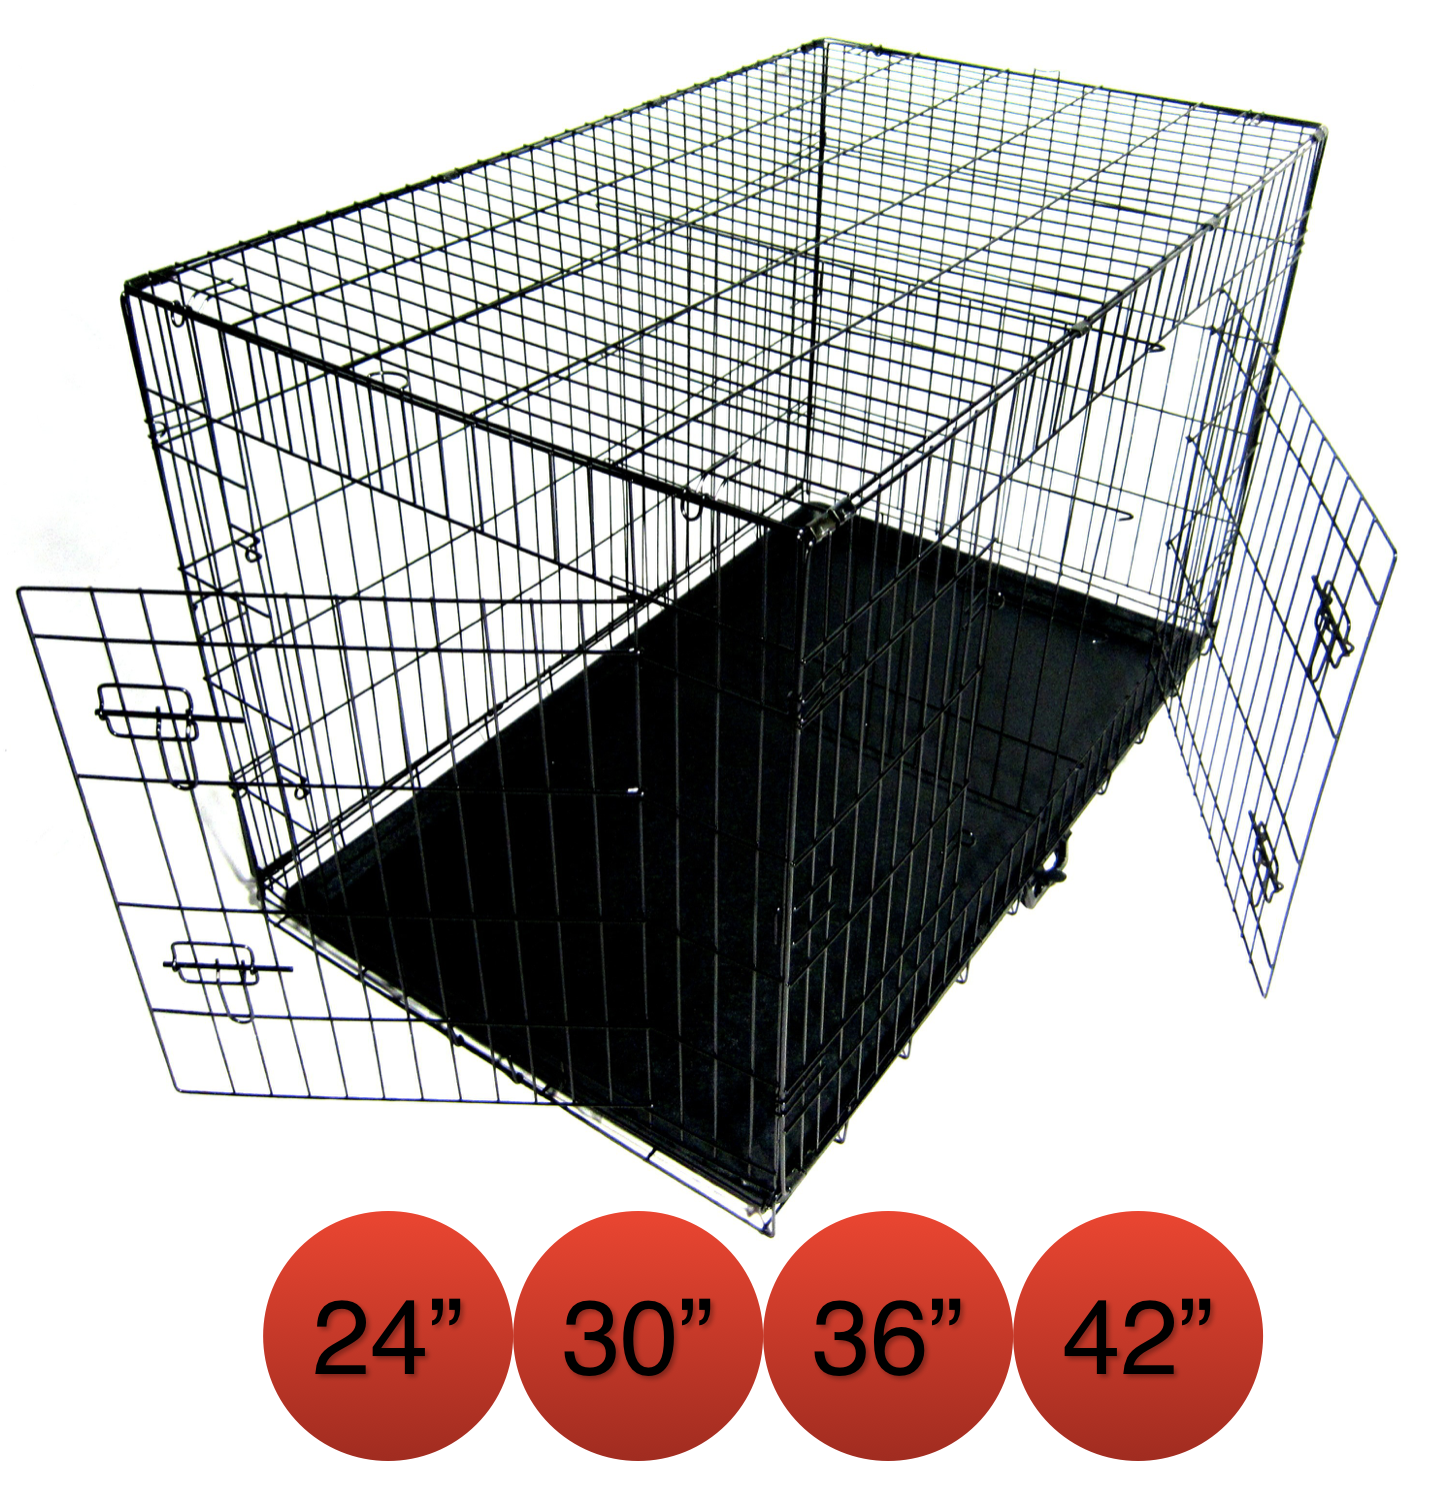 Folding Metal Dog Cage By Mr Barker Puppy Training Crates 5 sizes 24-42 Inch 4